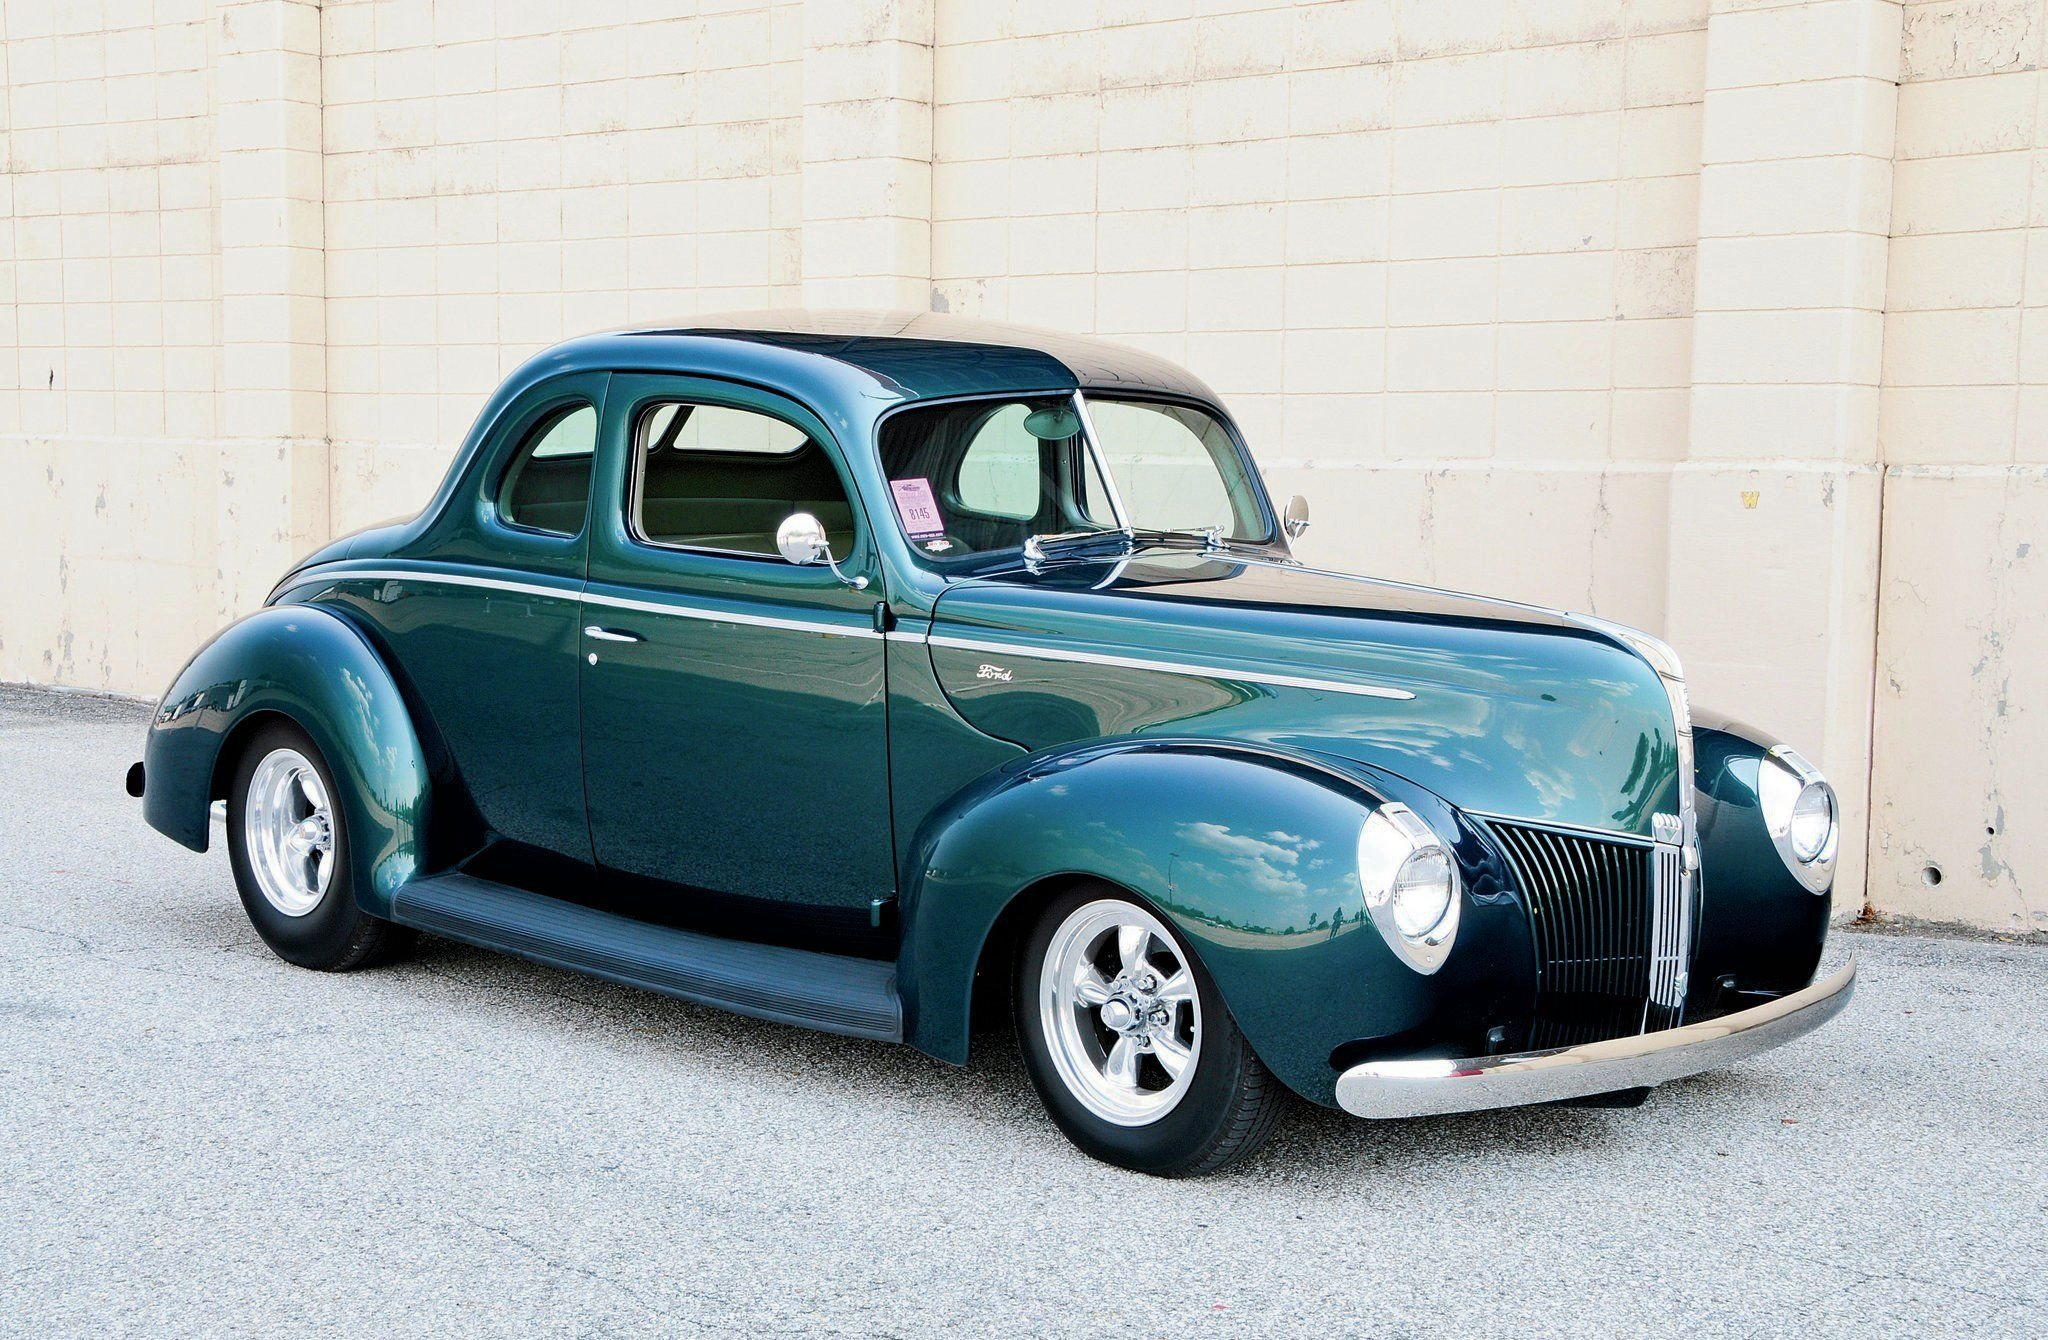 1940 Ford Coupe Deluxe-01 wallpaper